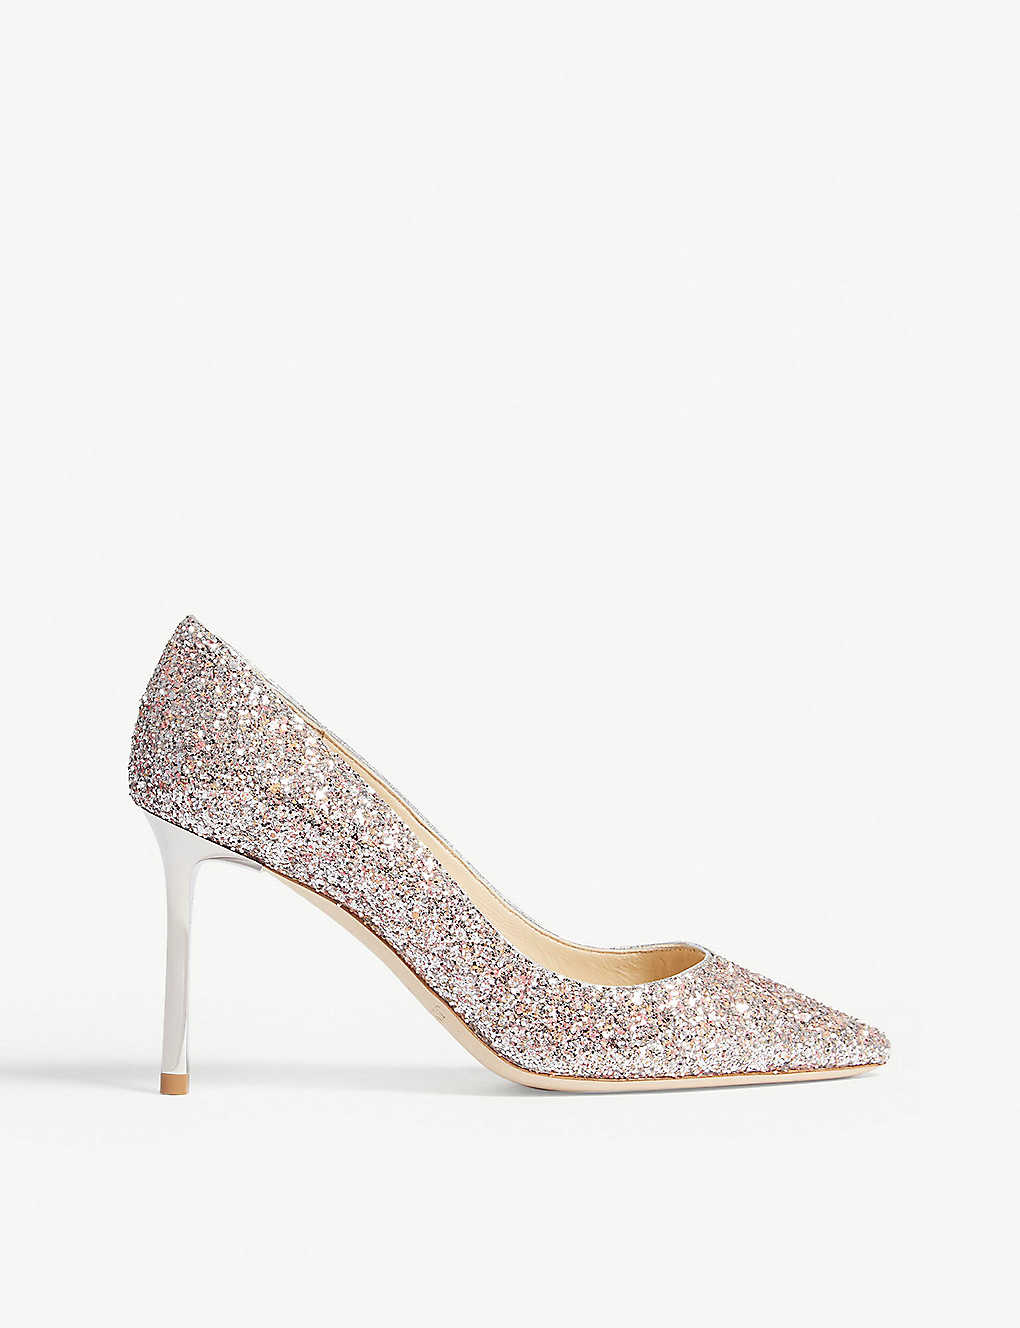 5d2acc99a96f JIMMY CHOO - Romy 85 speckled glitter courts | Selfridges.com